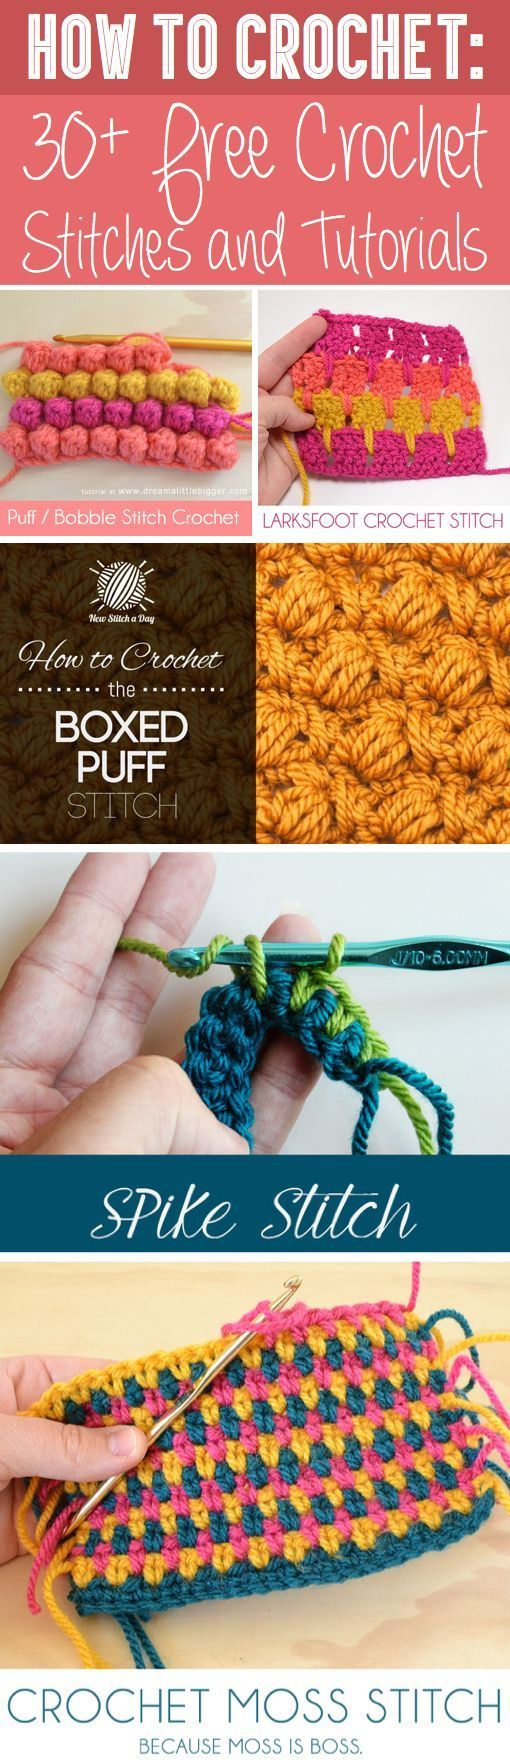 Diversify Your Crochet Blanket Patterns With These 30+ Free Crochet Stitches  And Tutorials Http: